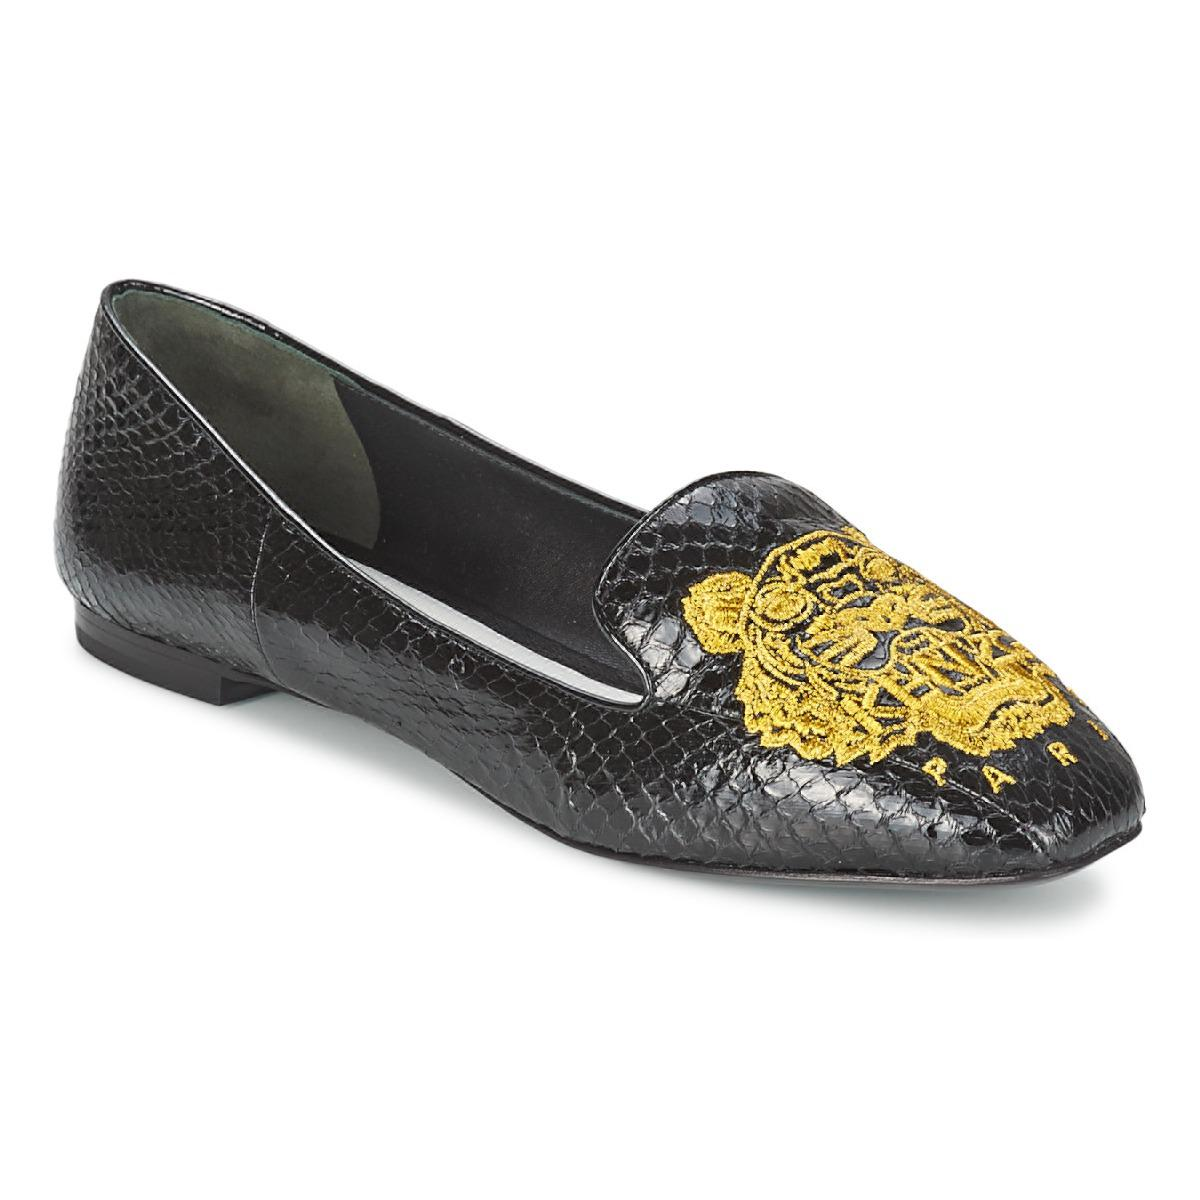 Cheap Discount Authentic Clearance Cheapest Price Kenzo 2SL100 women's Shoes (Pumps / Ballerinas) in lnQfld78